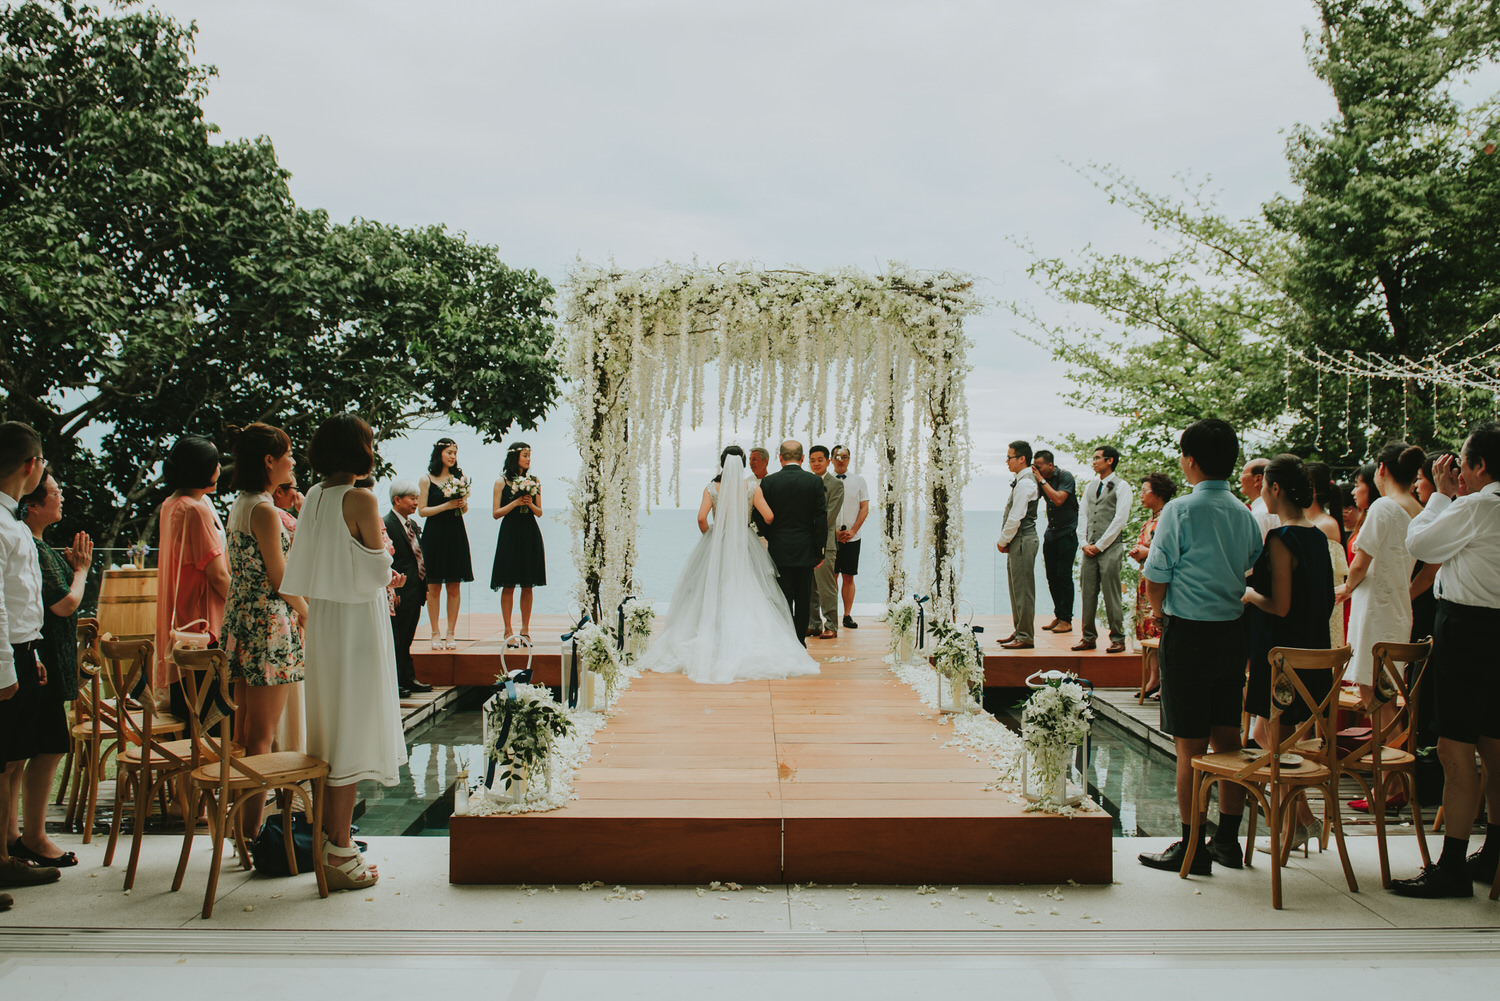 phuket wedding-diktatphotography-alex&andy wedding-96